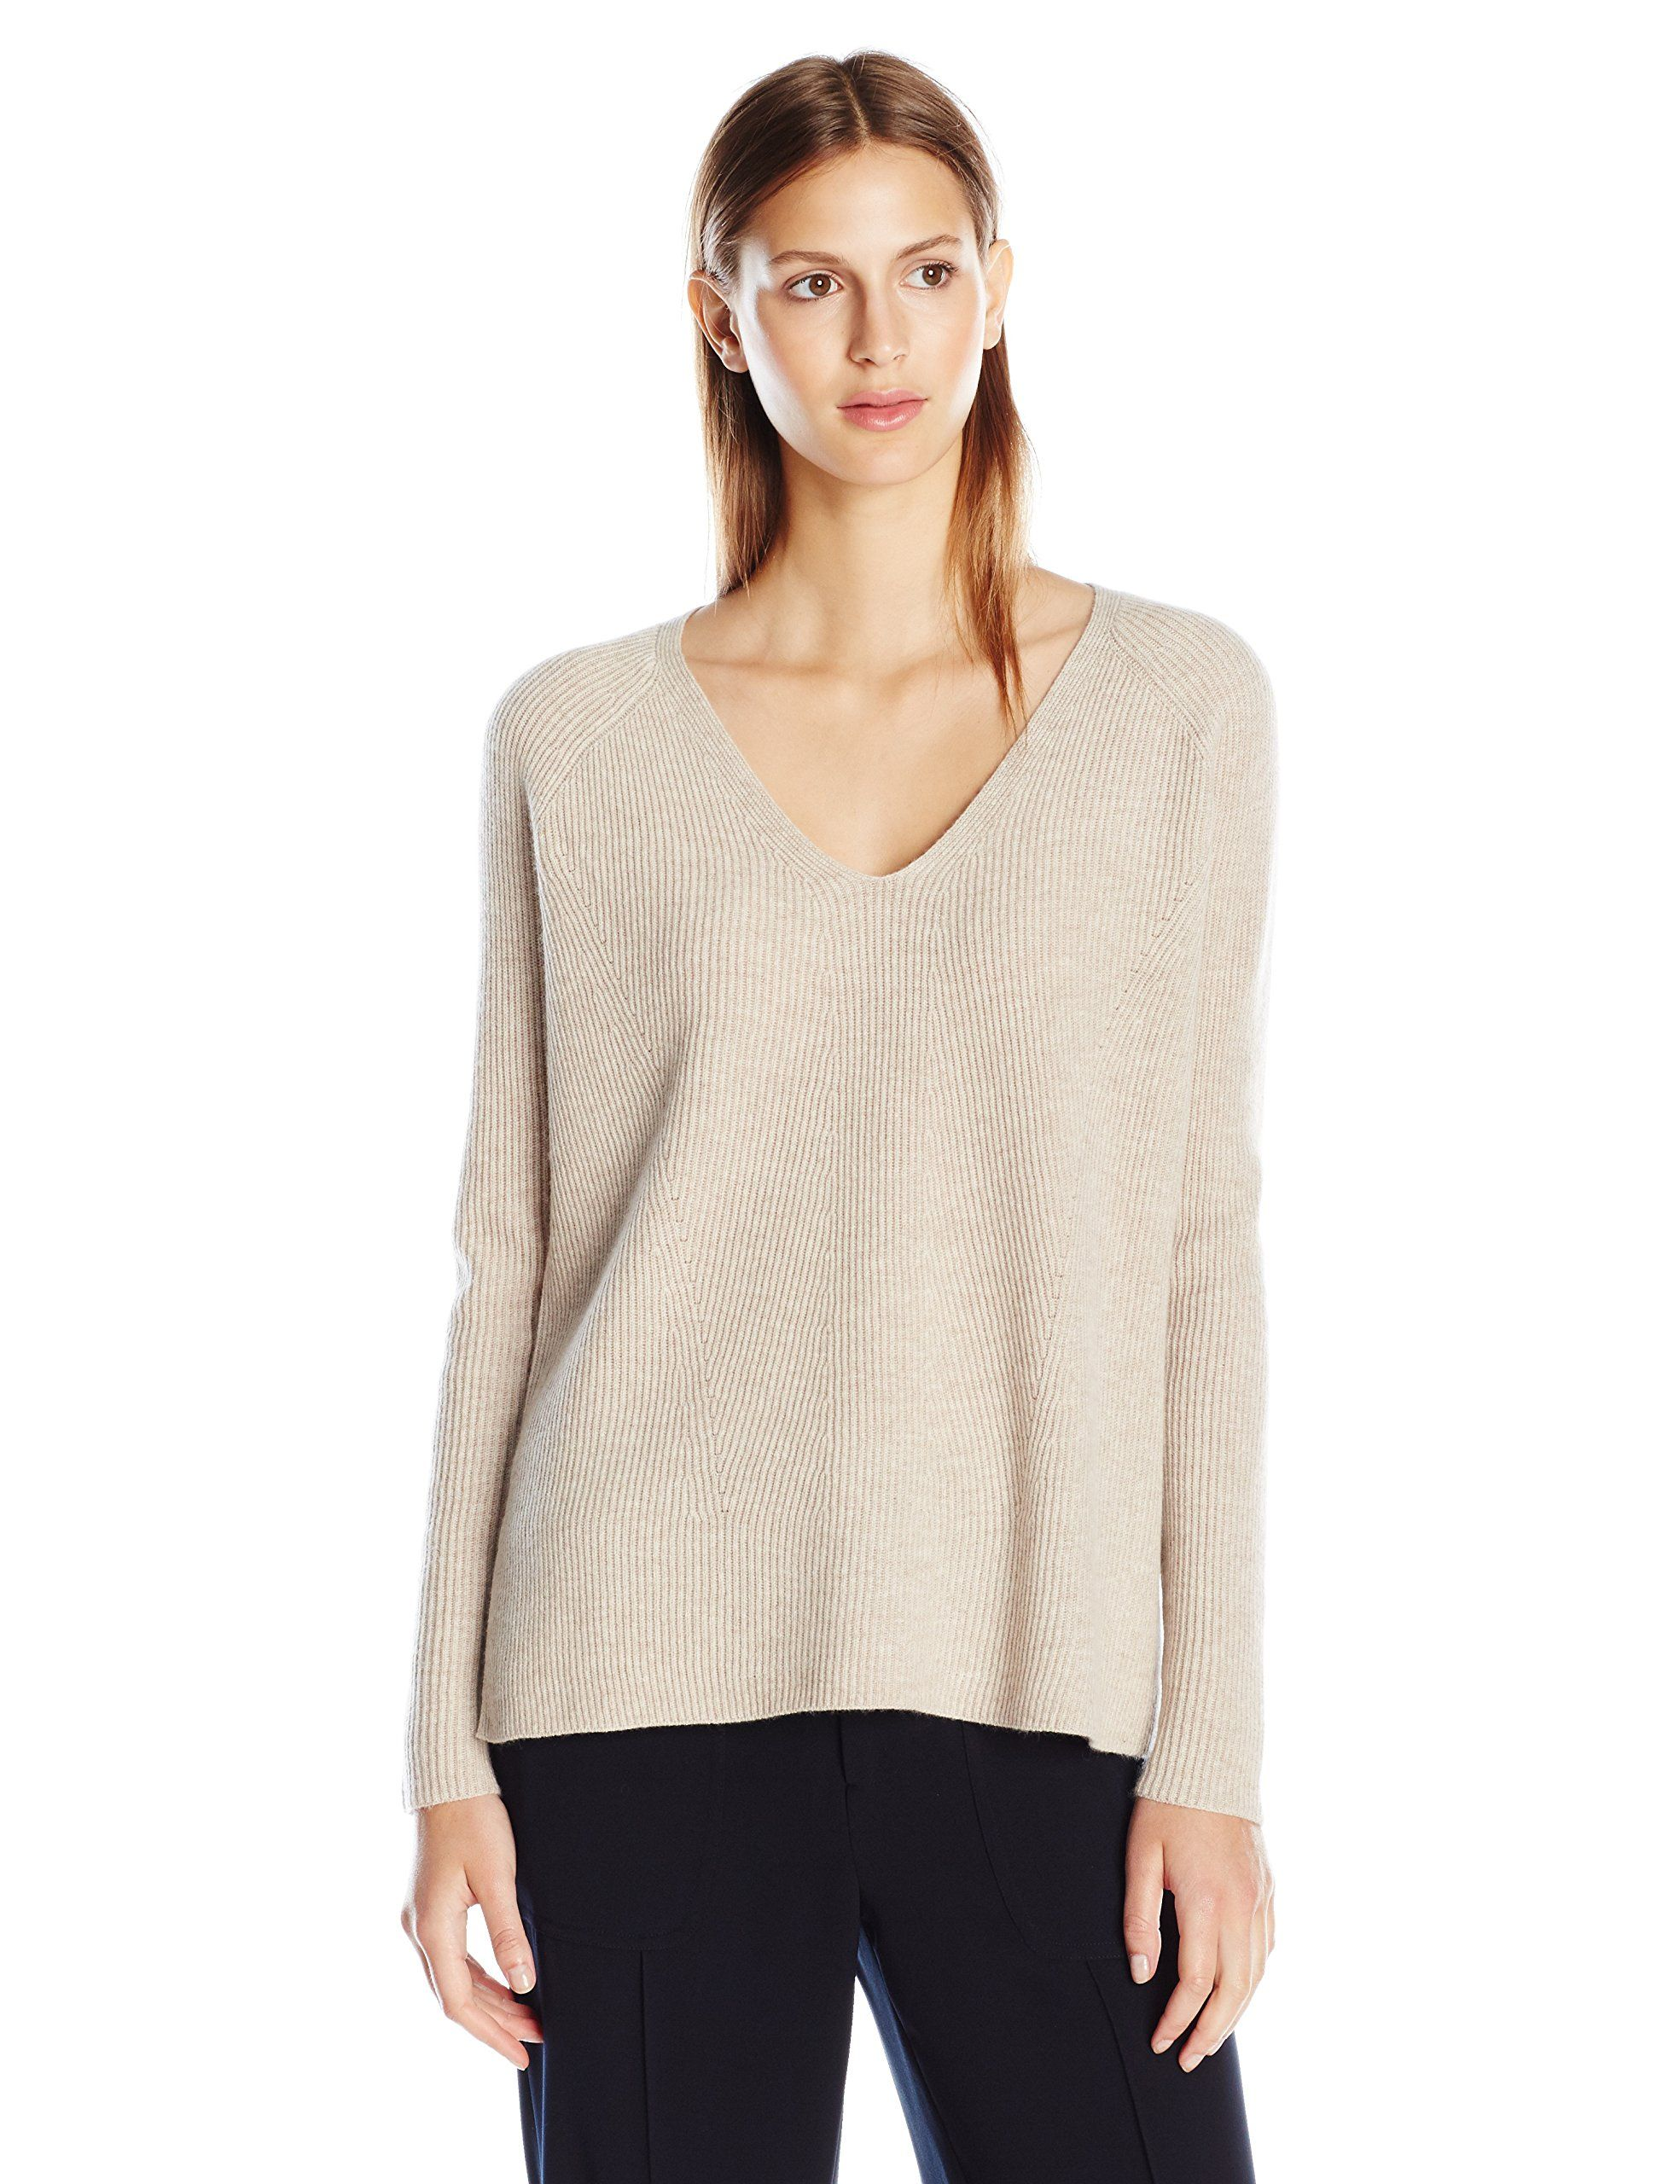 Vince Women's Vee Pullover, Light Heather Marzipan, Large